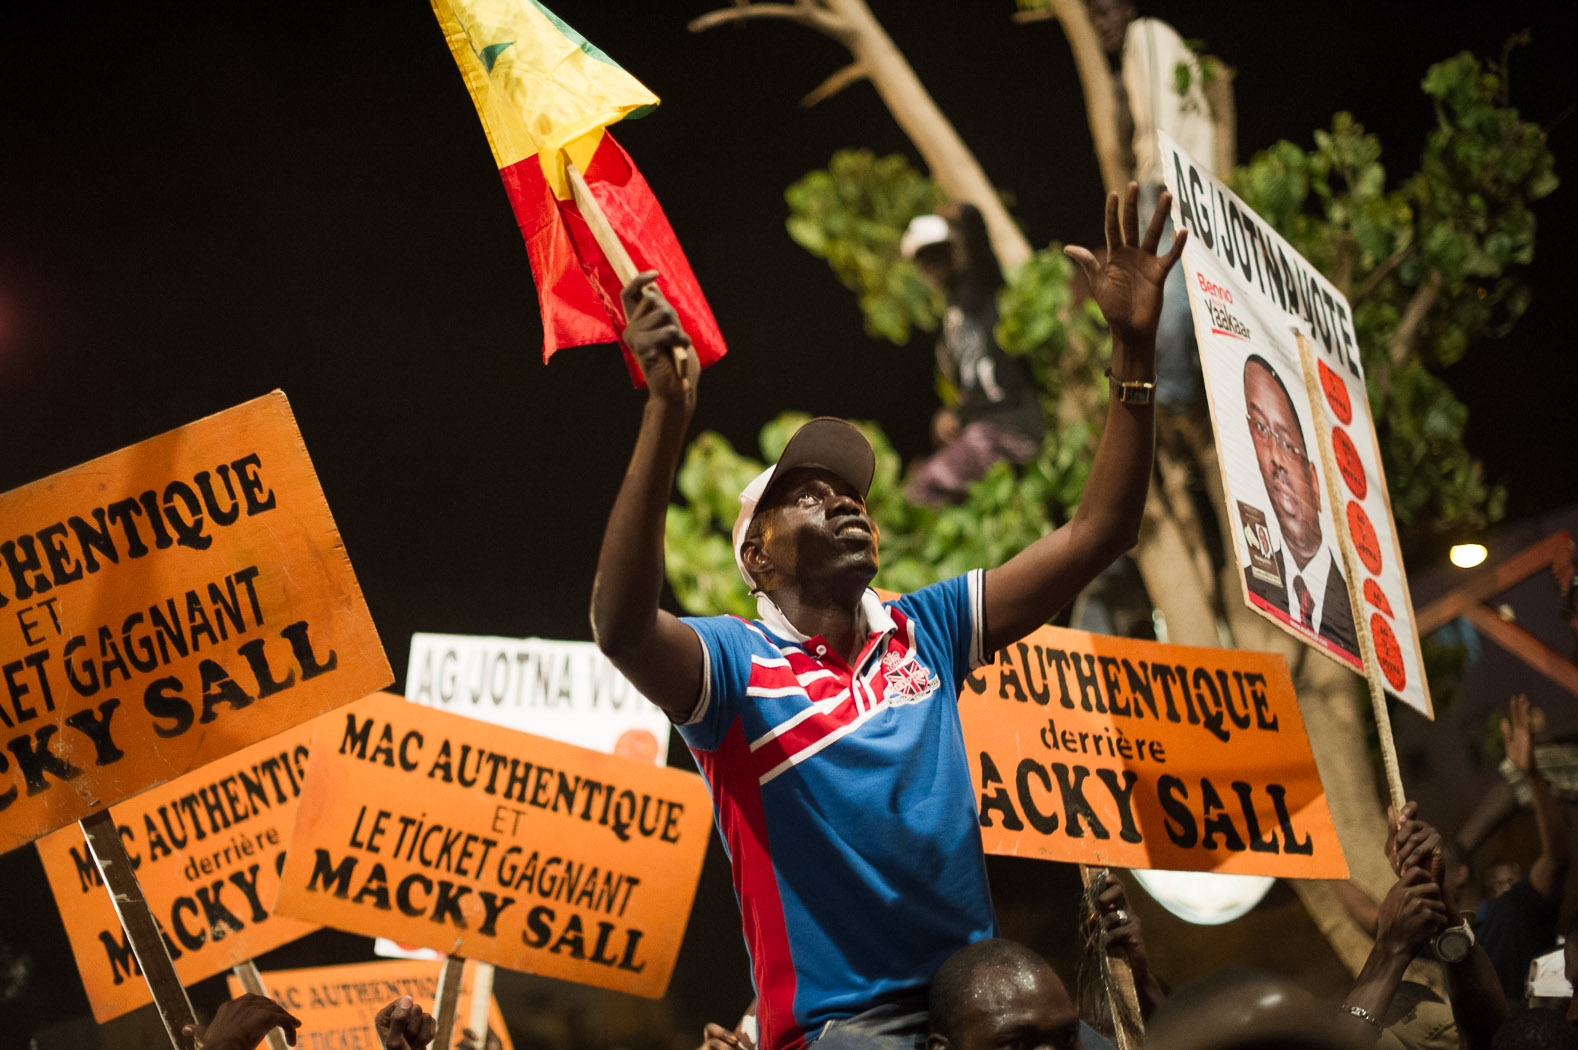 As it became increasingly clear that Sall would take the win, a jubilent atmosphere filled the streets.